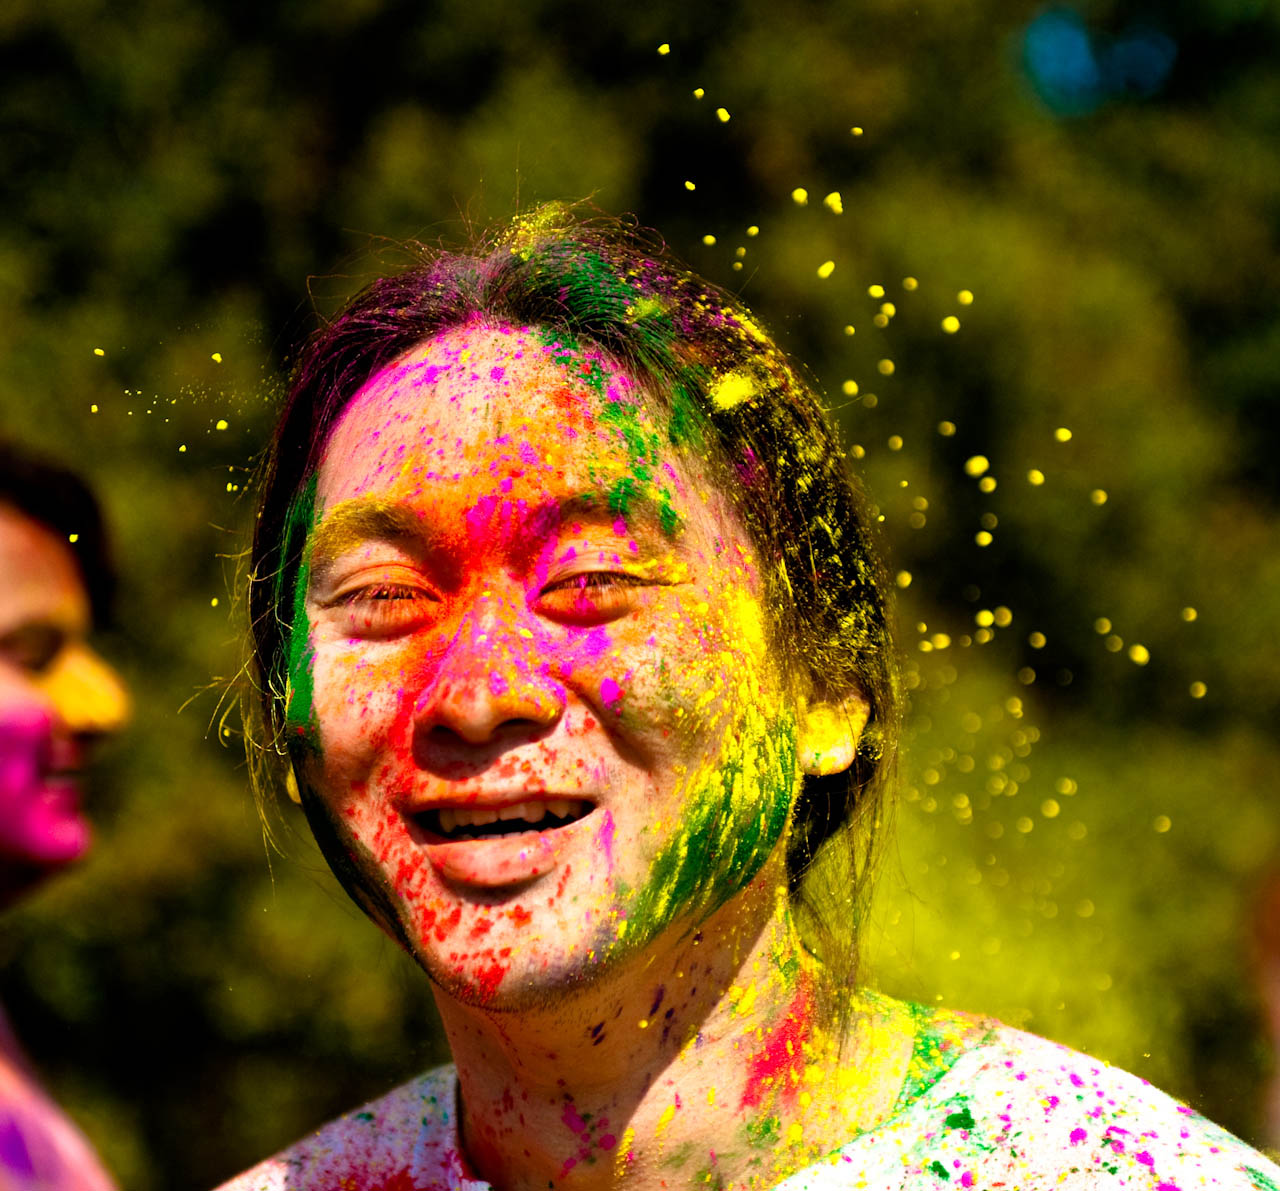 holi festival8 The Most Colorful Holi Festival